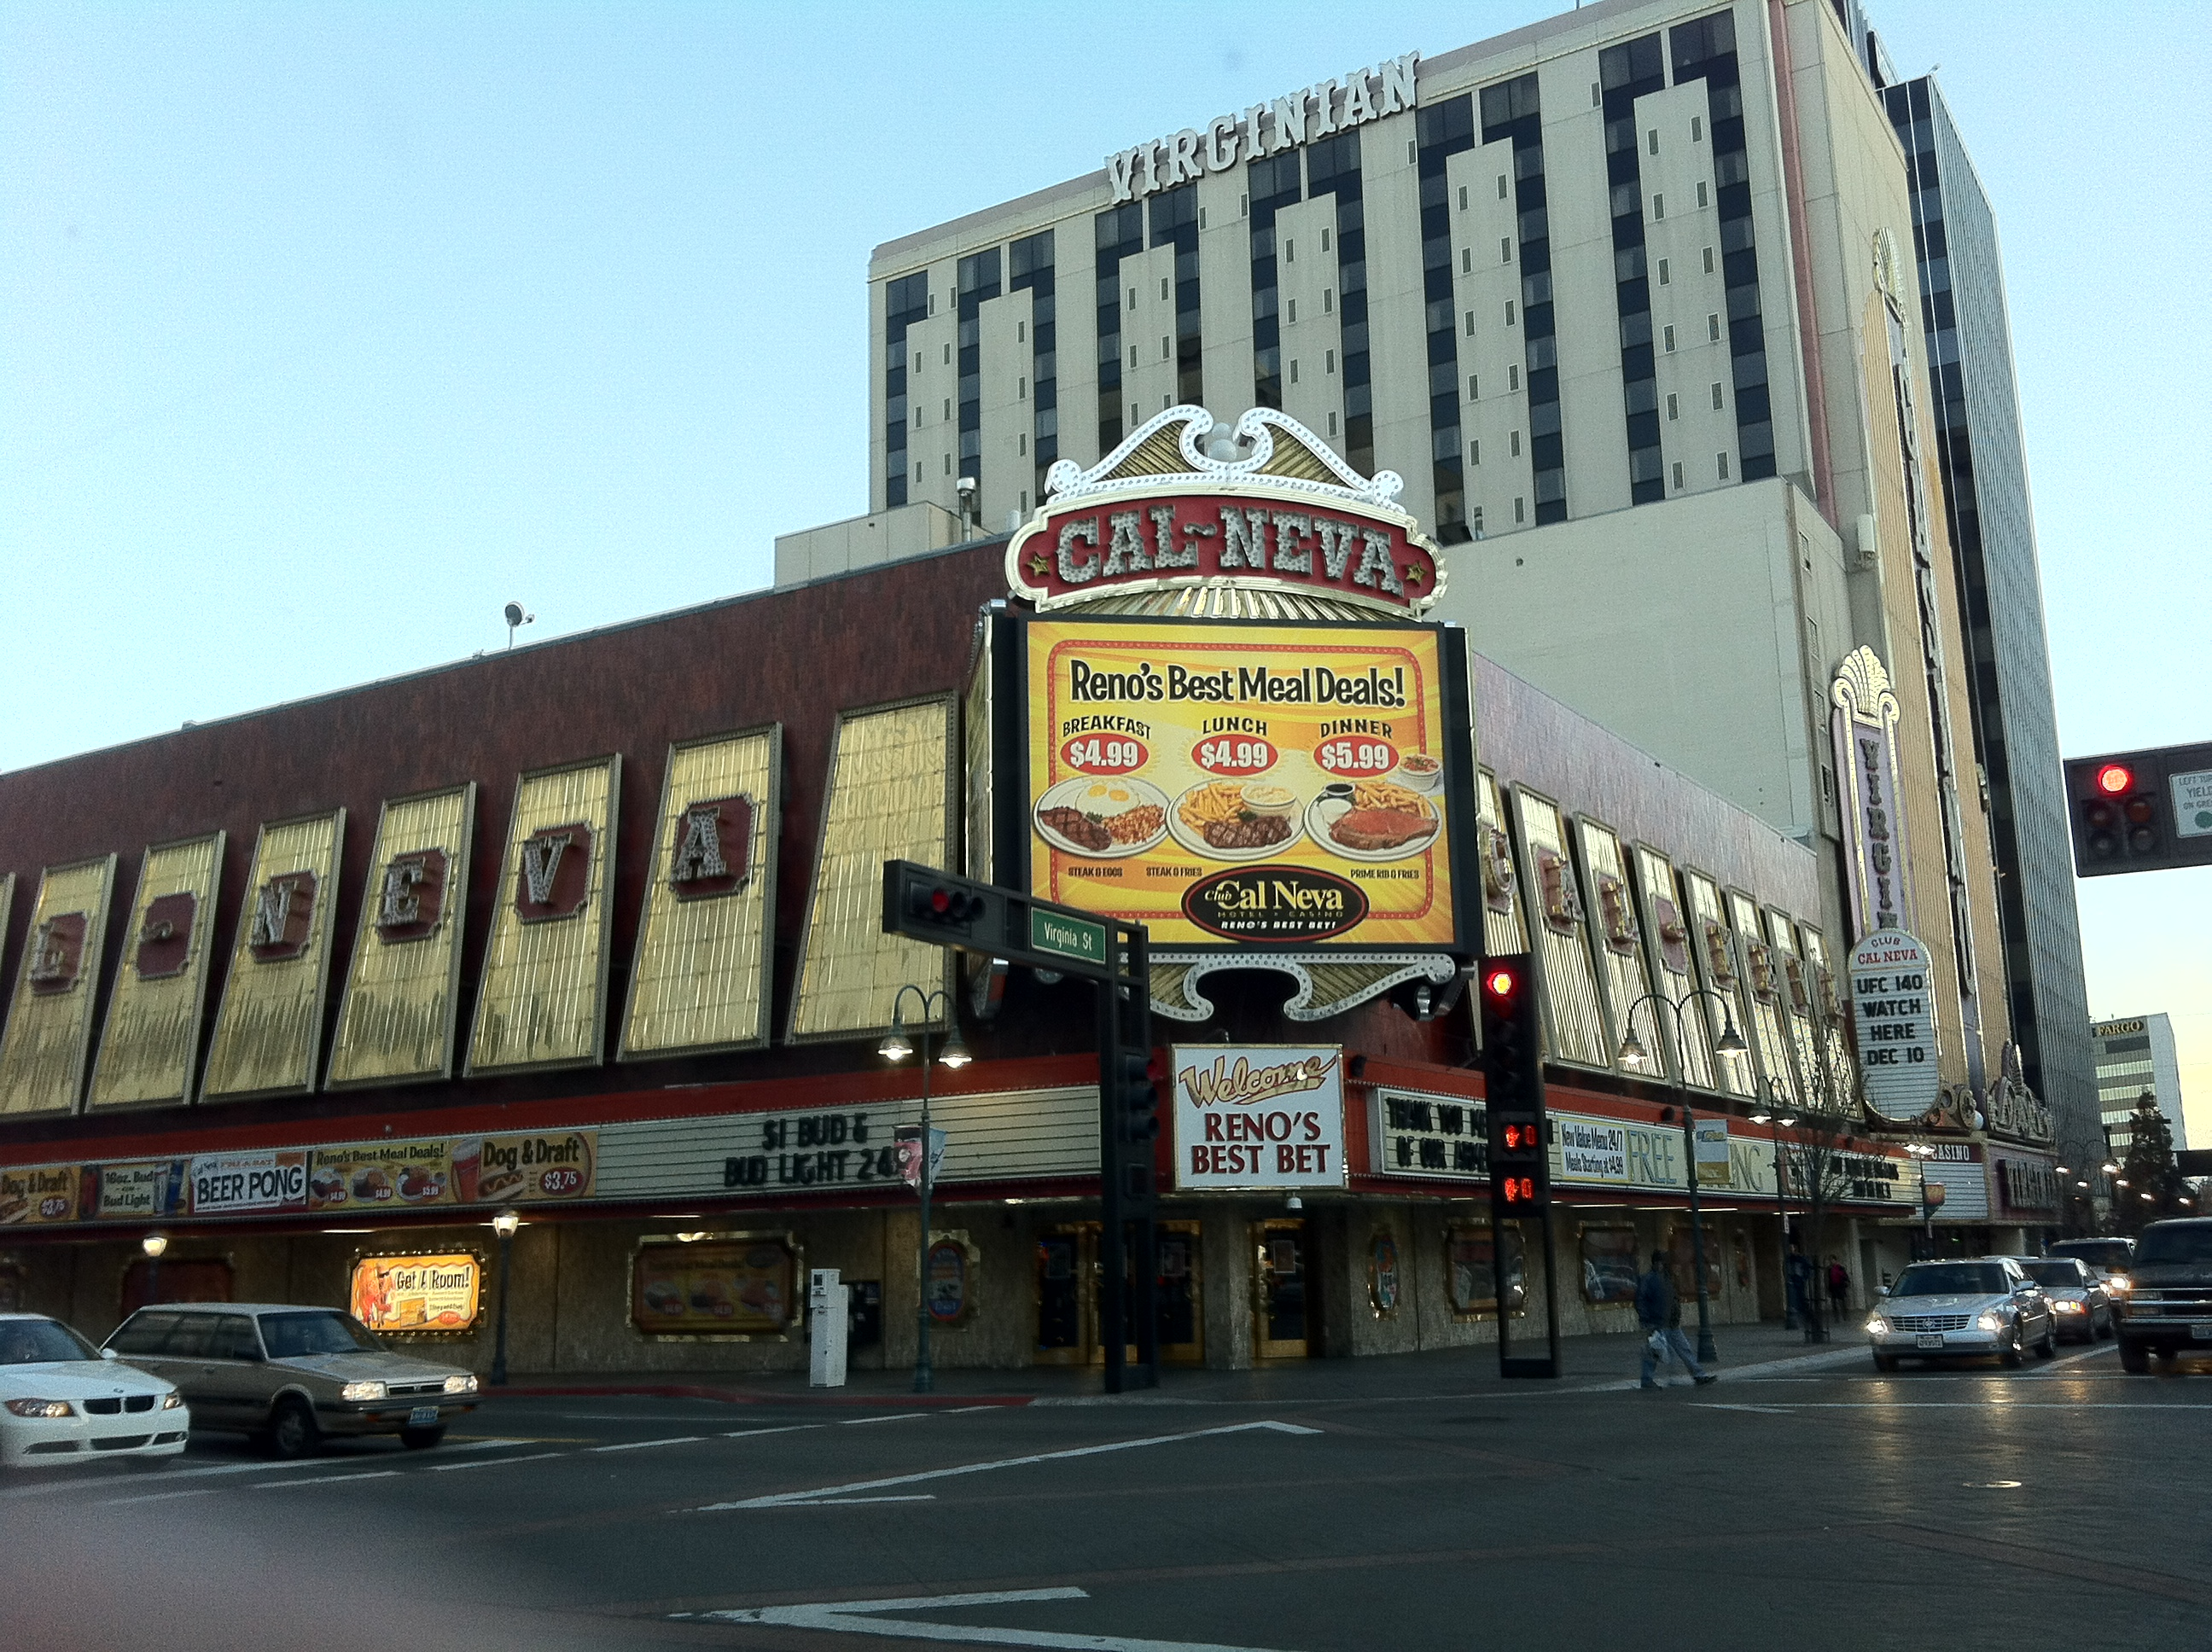 Club cal neva casino in reno casino chip fraud